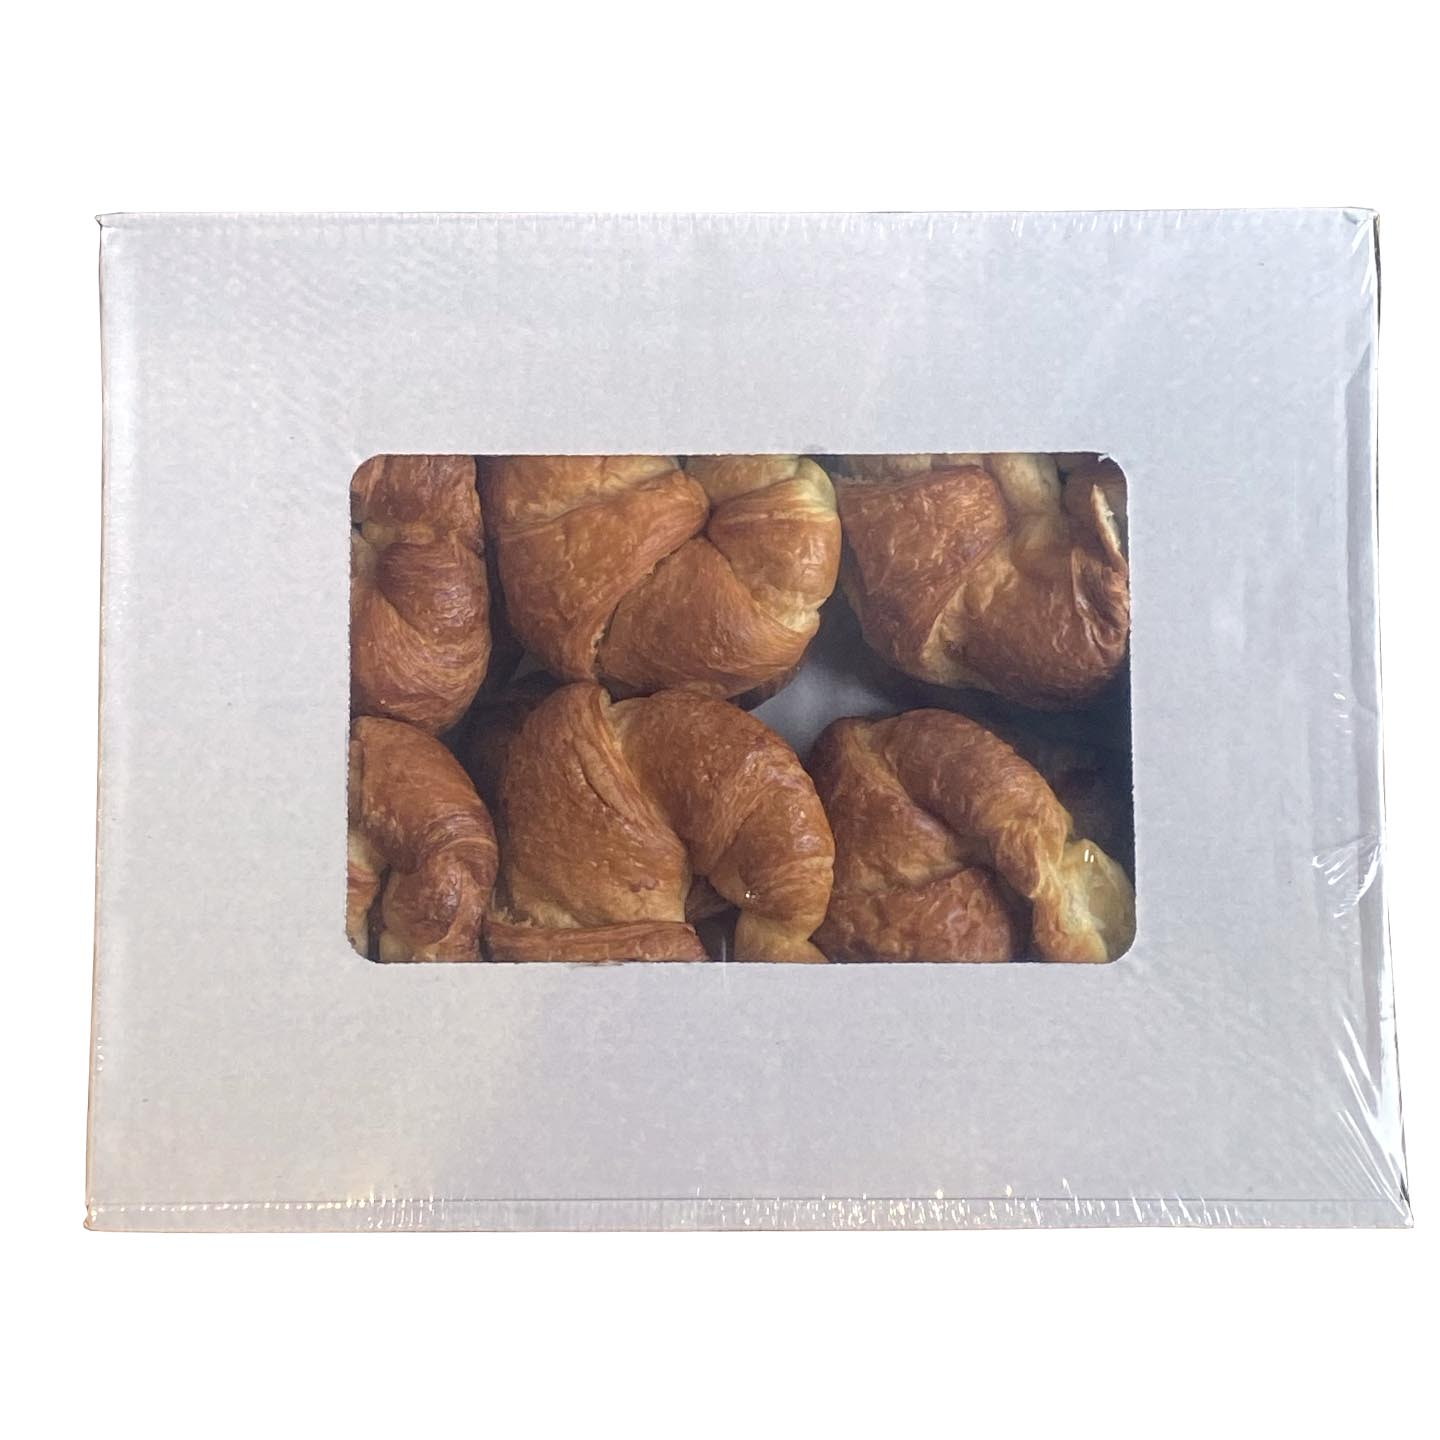 Croissants Packaged